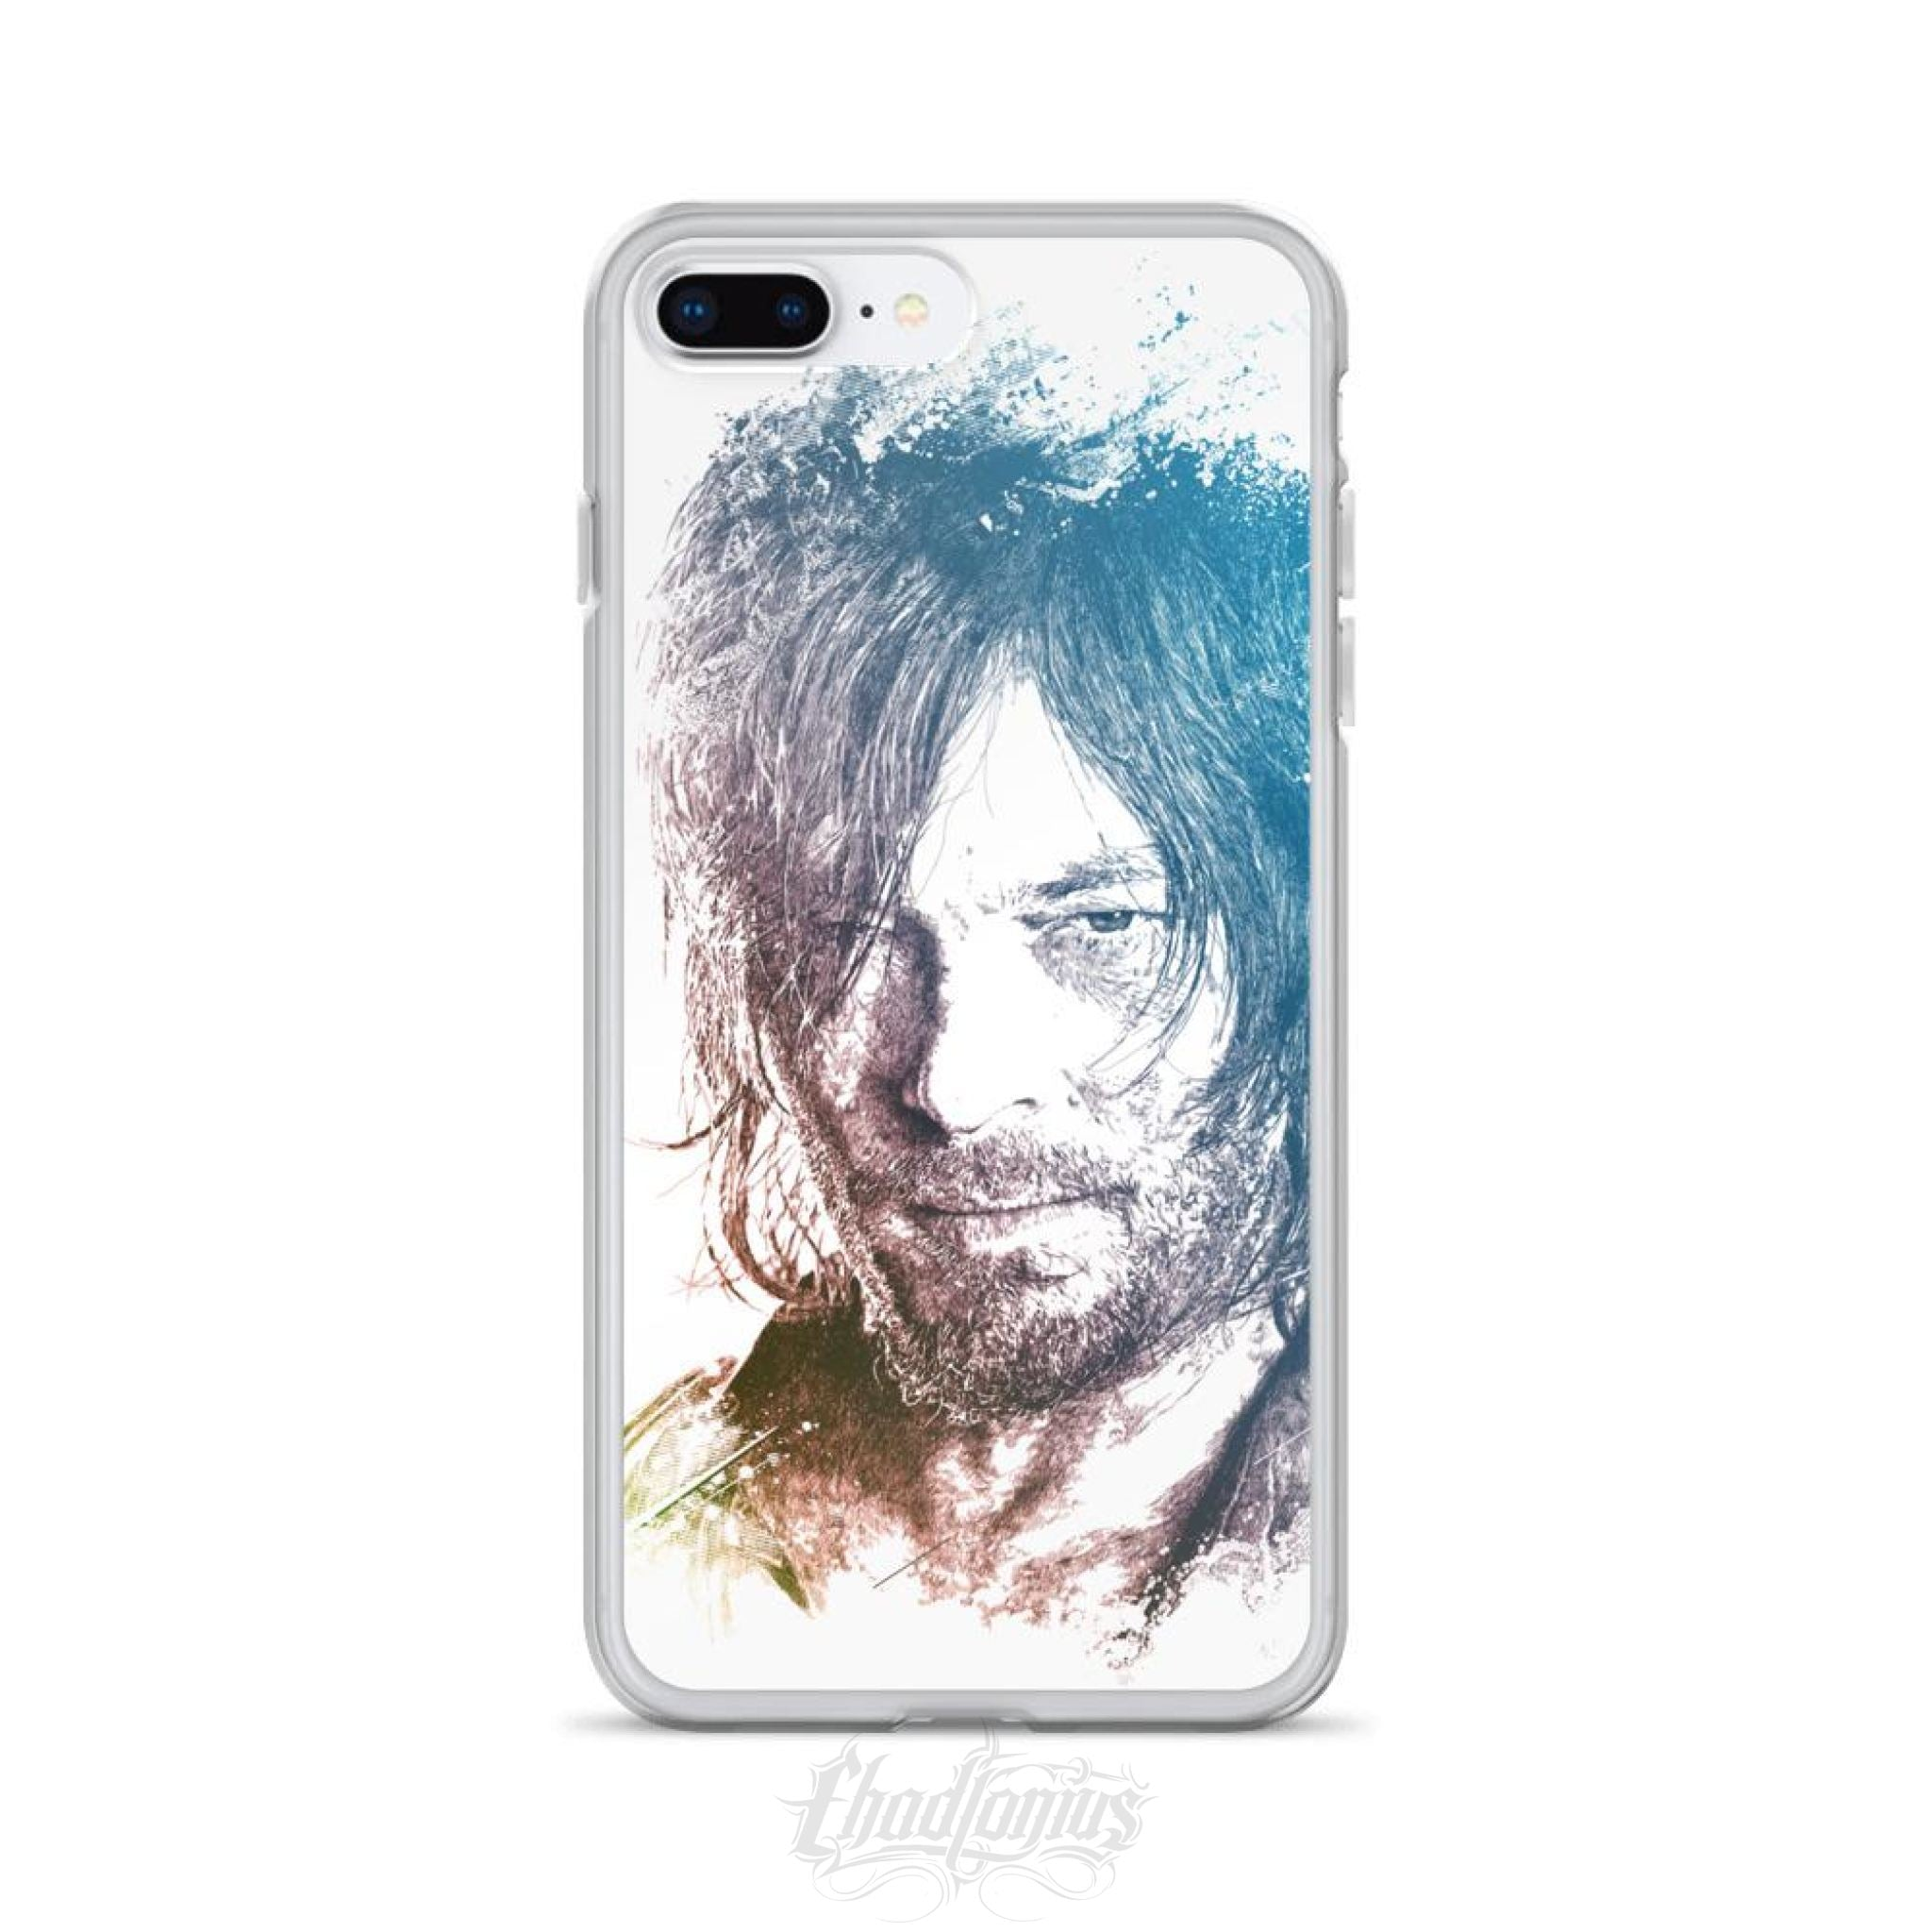 Daryl Dixon - Iphone Case 7 Plus/8 Plus Accessories Chadlonius